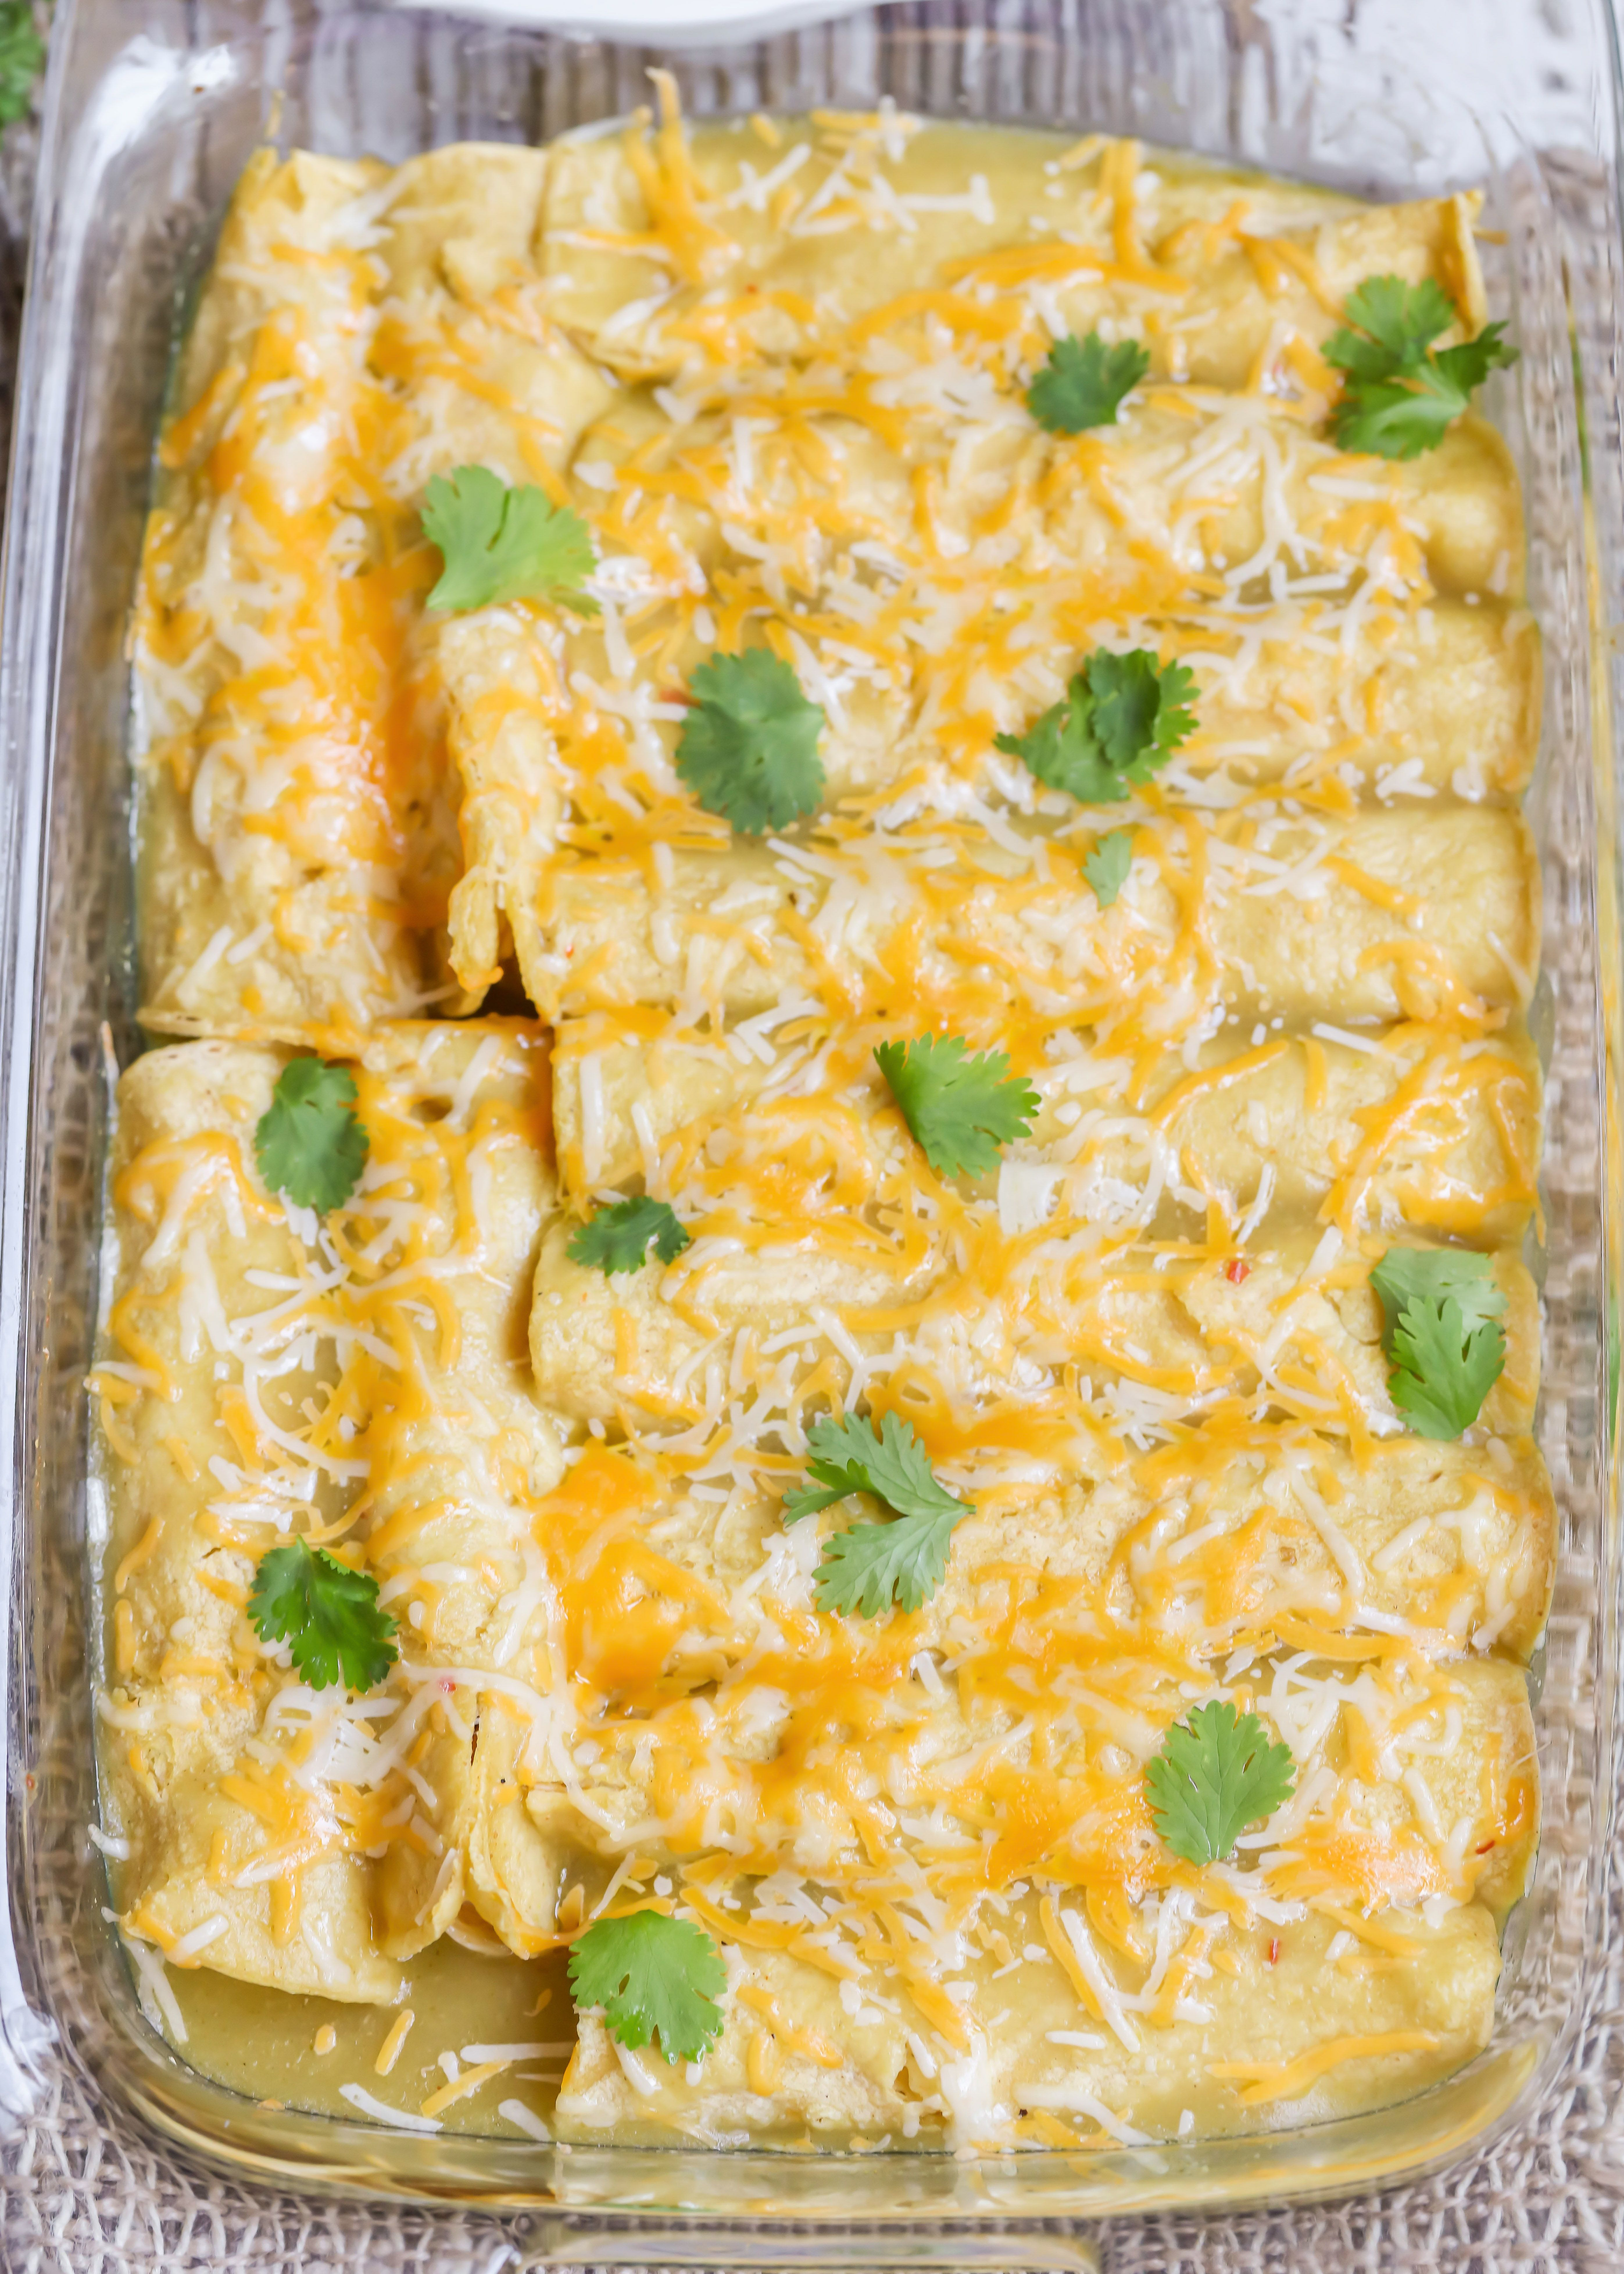 Best Green Chile Chicken Enchiladas Video Lil Luna Recipe Chicken Enchiladas Easy Green Chile Chicken Enchiladas Mexican Food Recipes